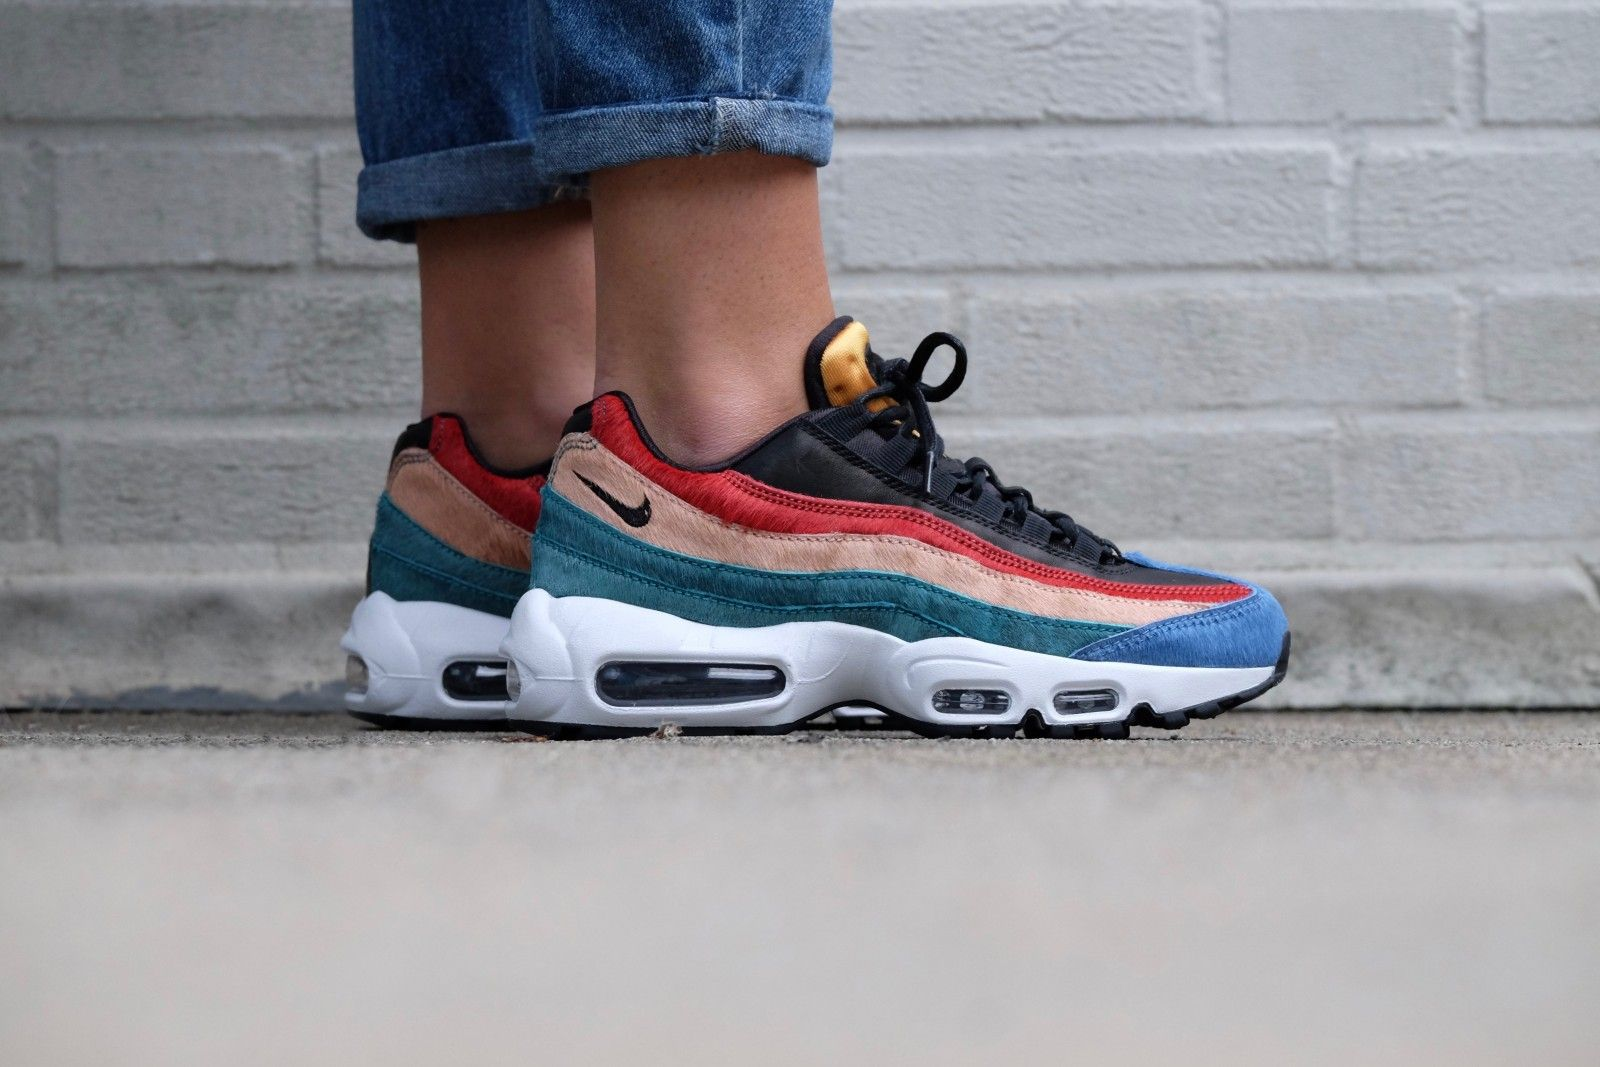 nike air max 95 premium dark cayenne and rio teal